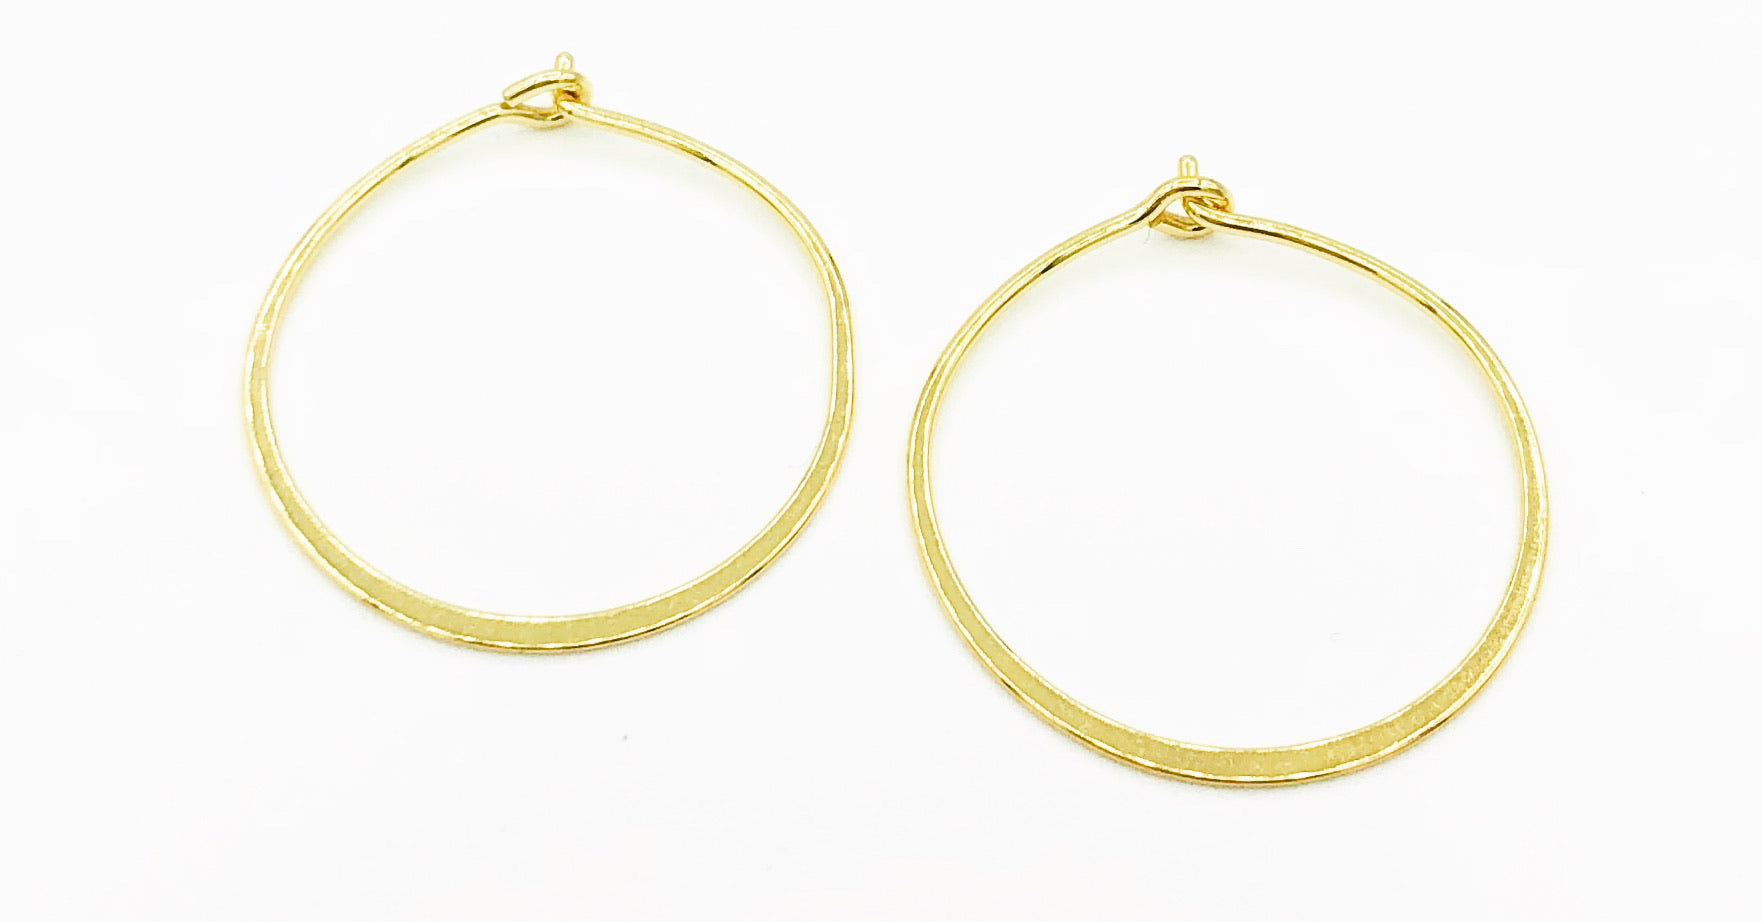 Yvette Small Hoop Earrings